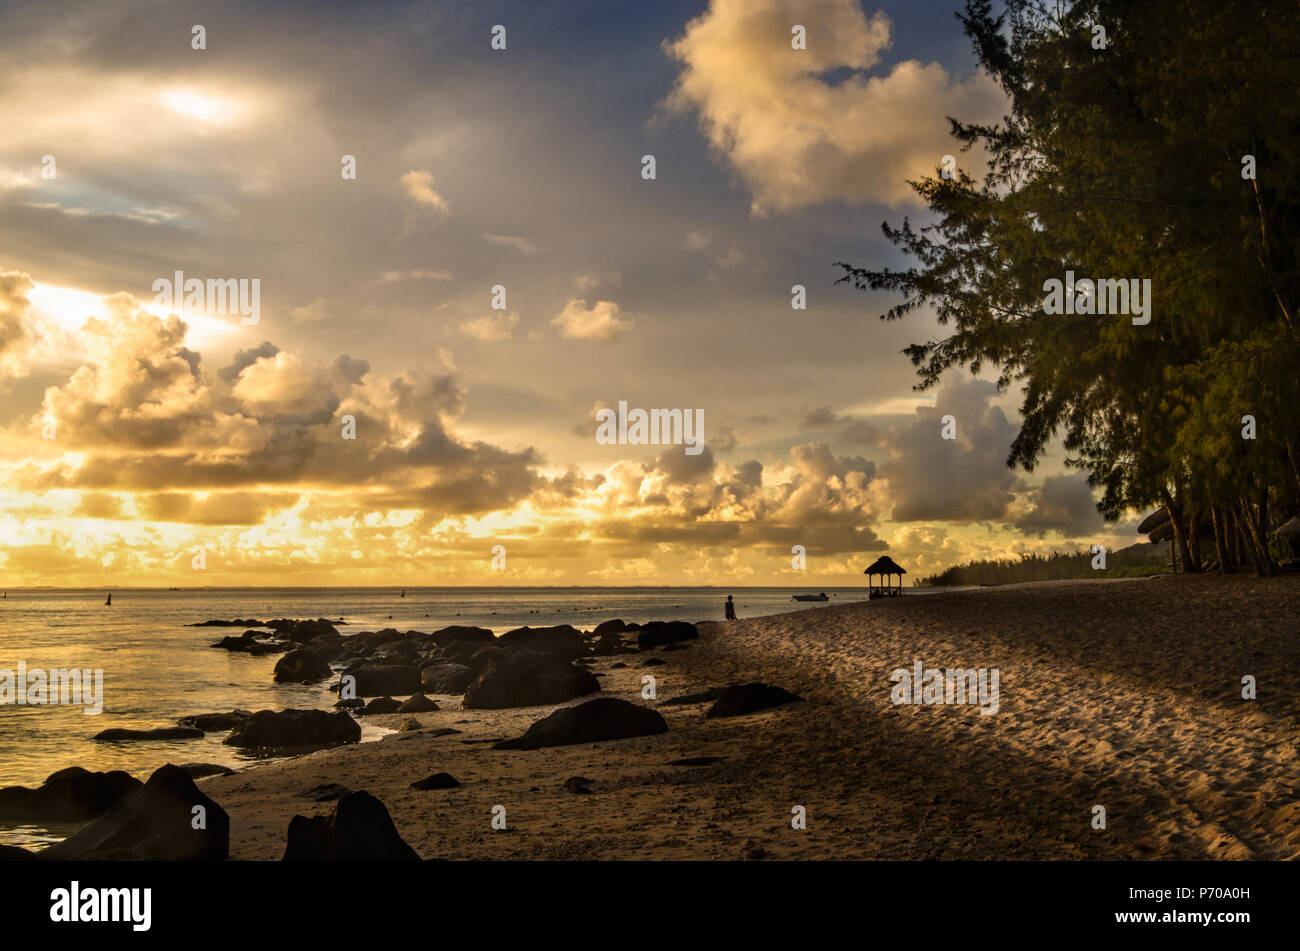 A golden sunset in Bel Ombre, Mauritius - Stock Image